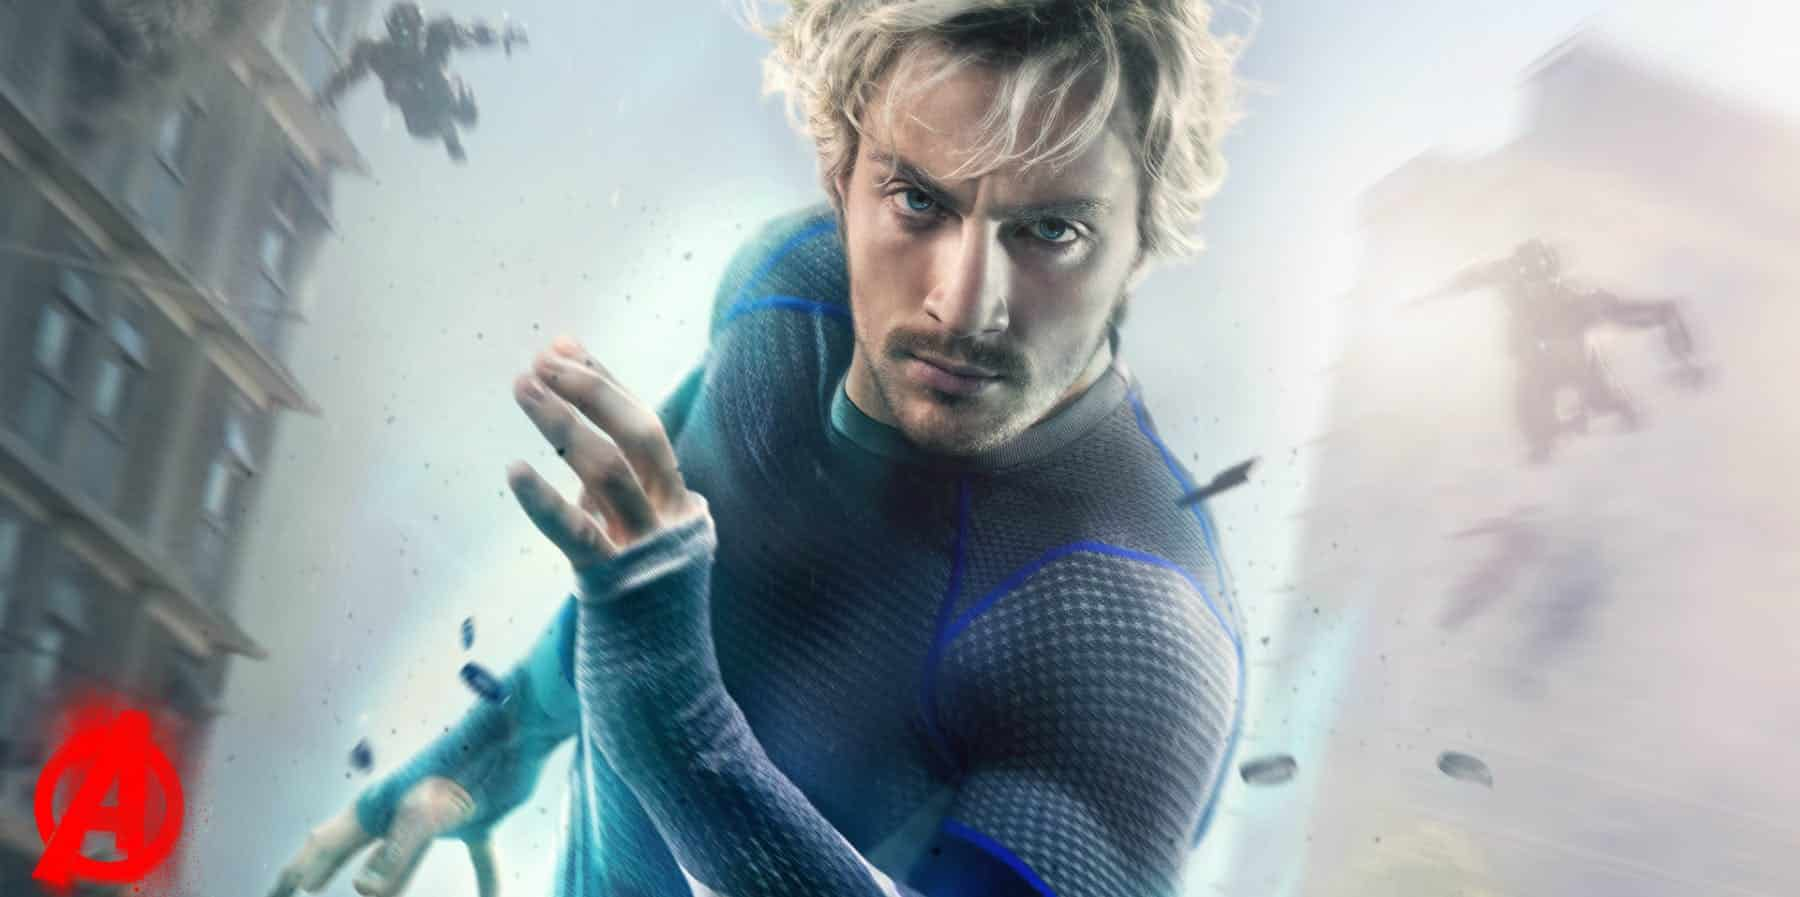 Aaron-Taylor-Johnson-Quicksilver-poster-for-Avengers-Age-of-Ultron